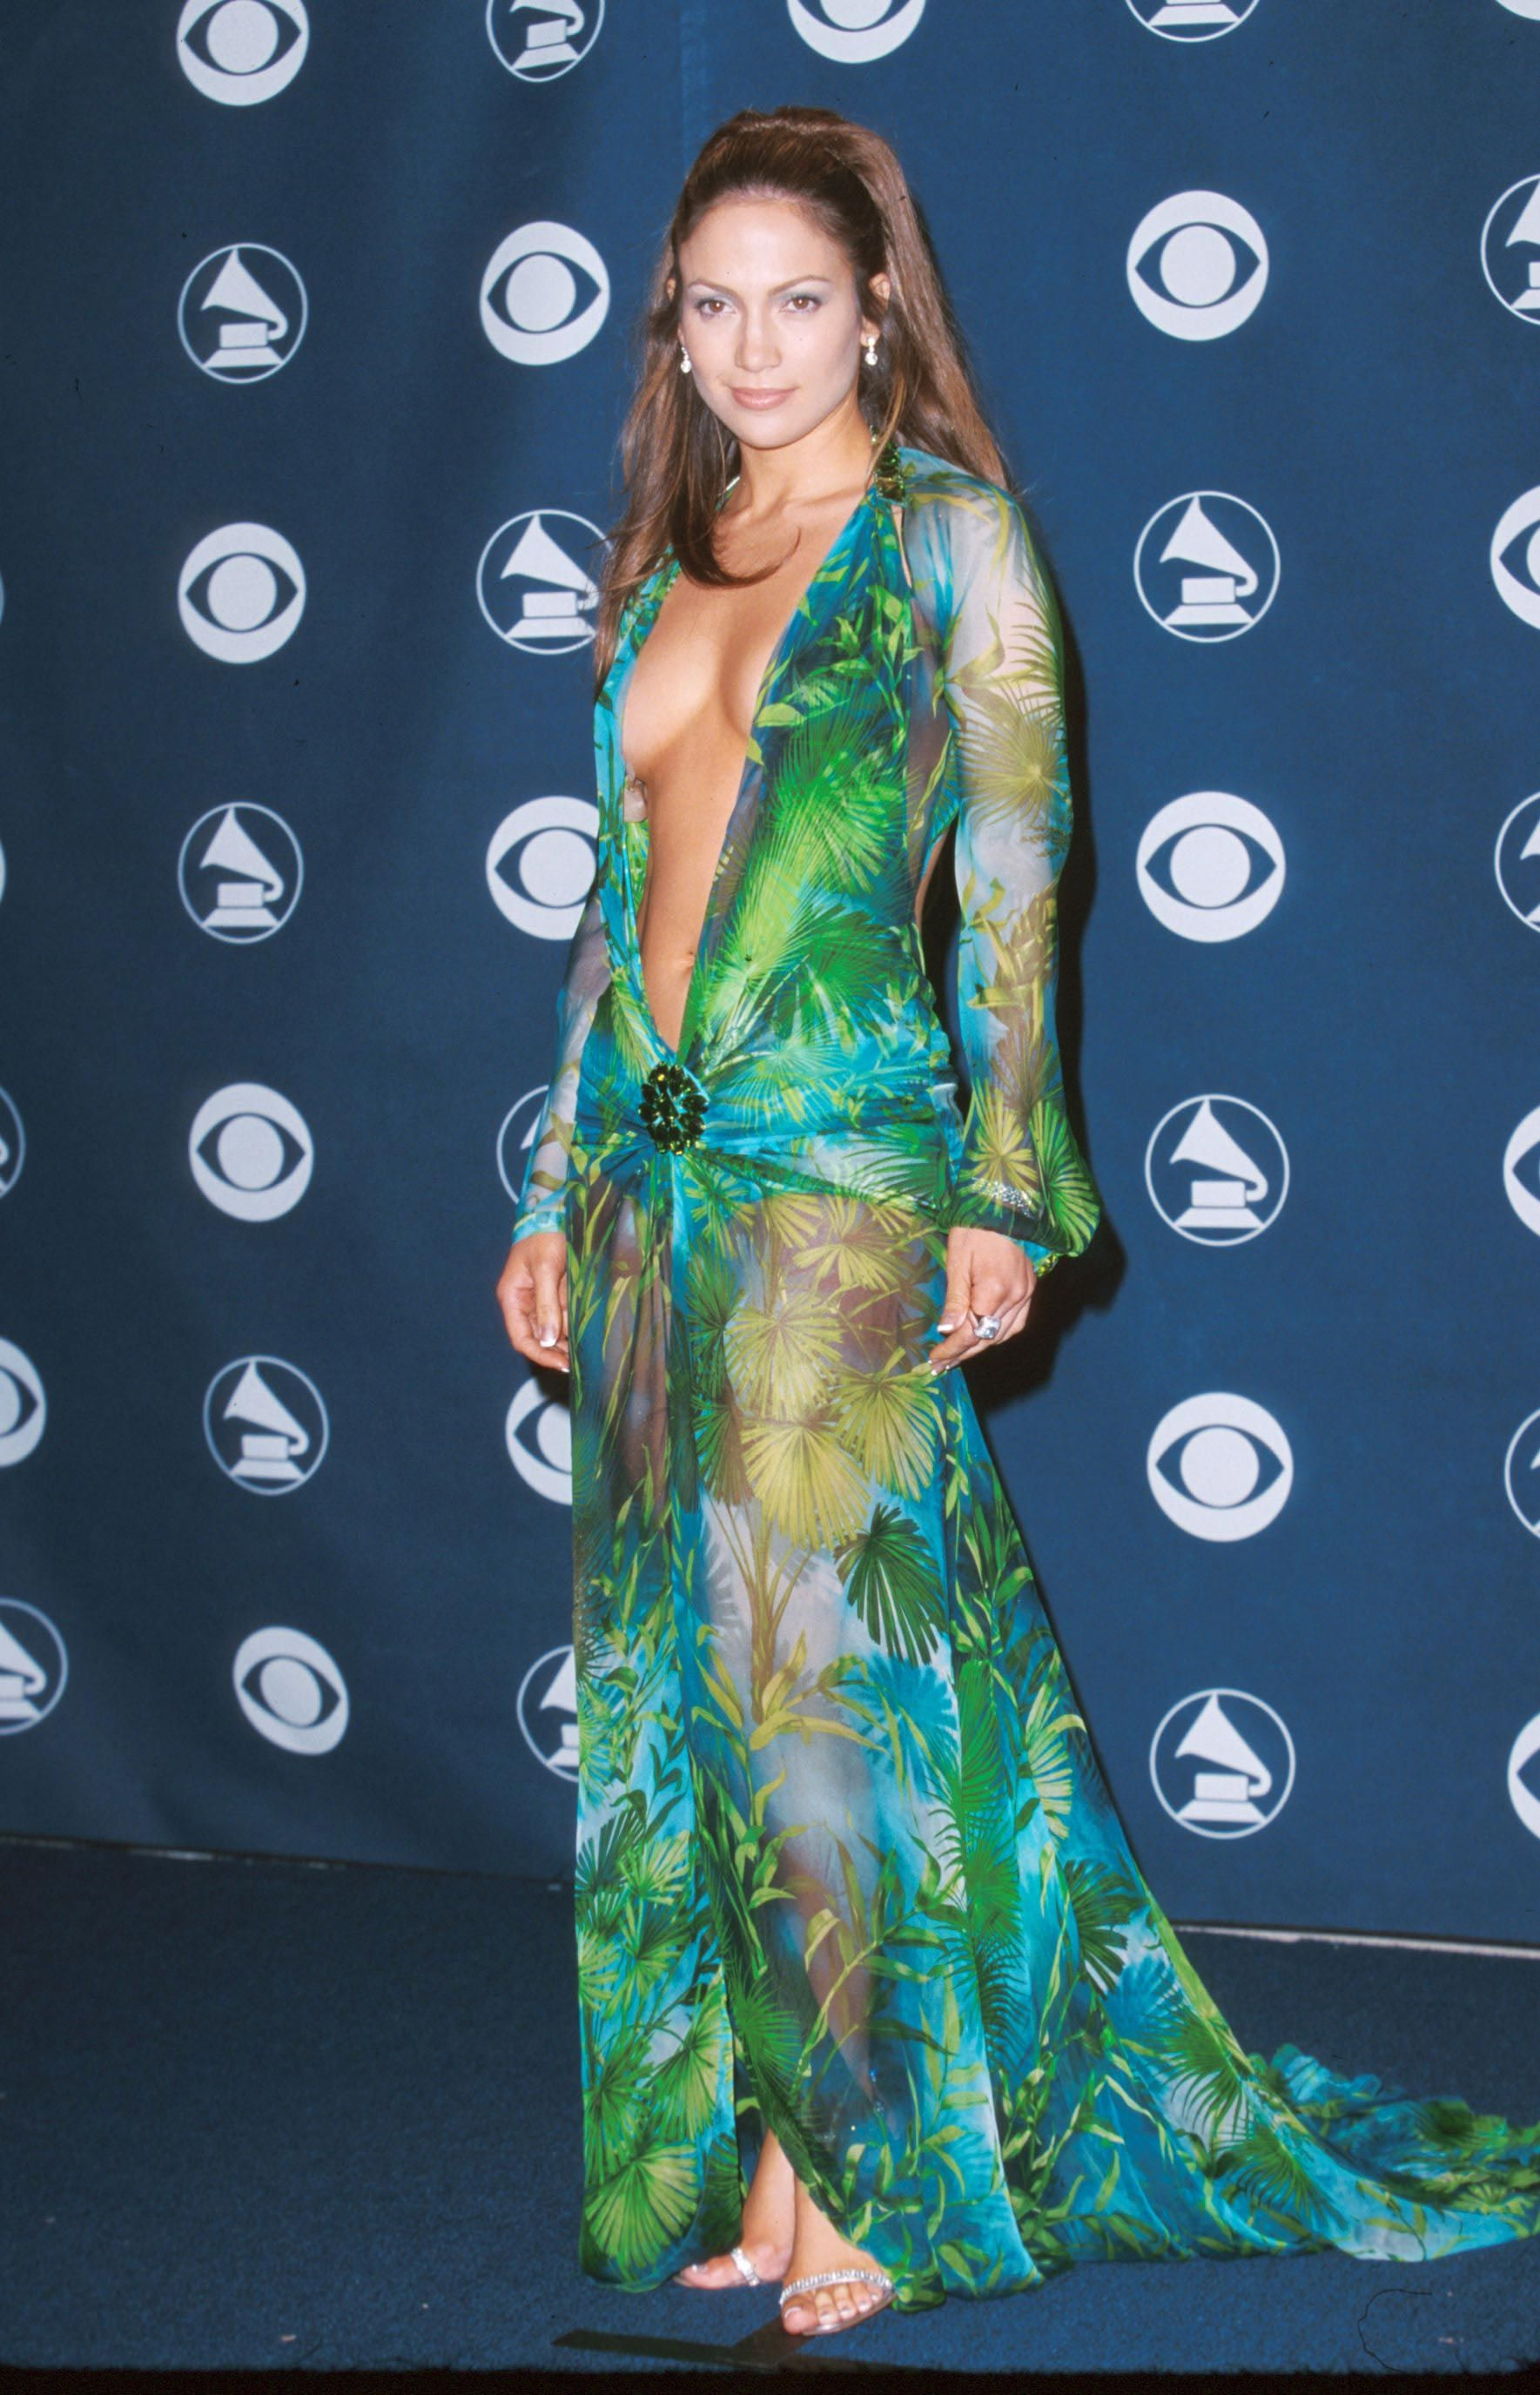 Jennifer Lopez 2000 43 Scandalous Dresses That Had Tongues Wagging Over The Years